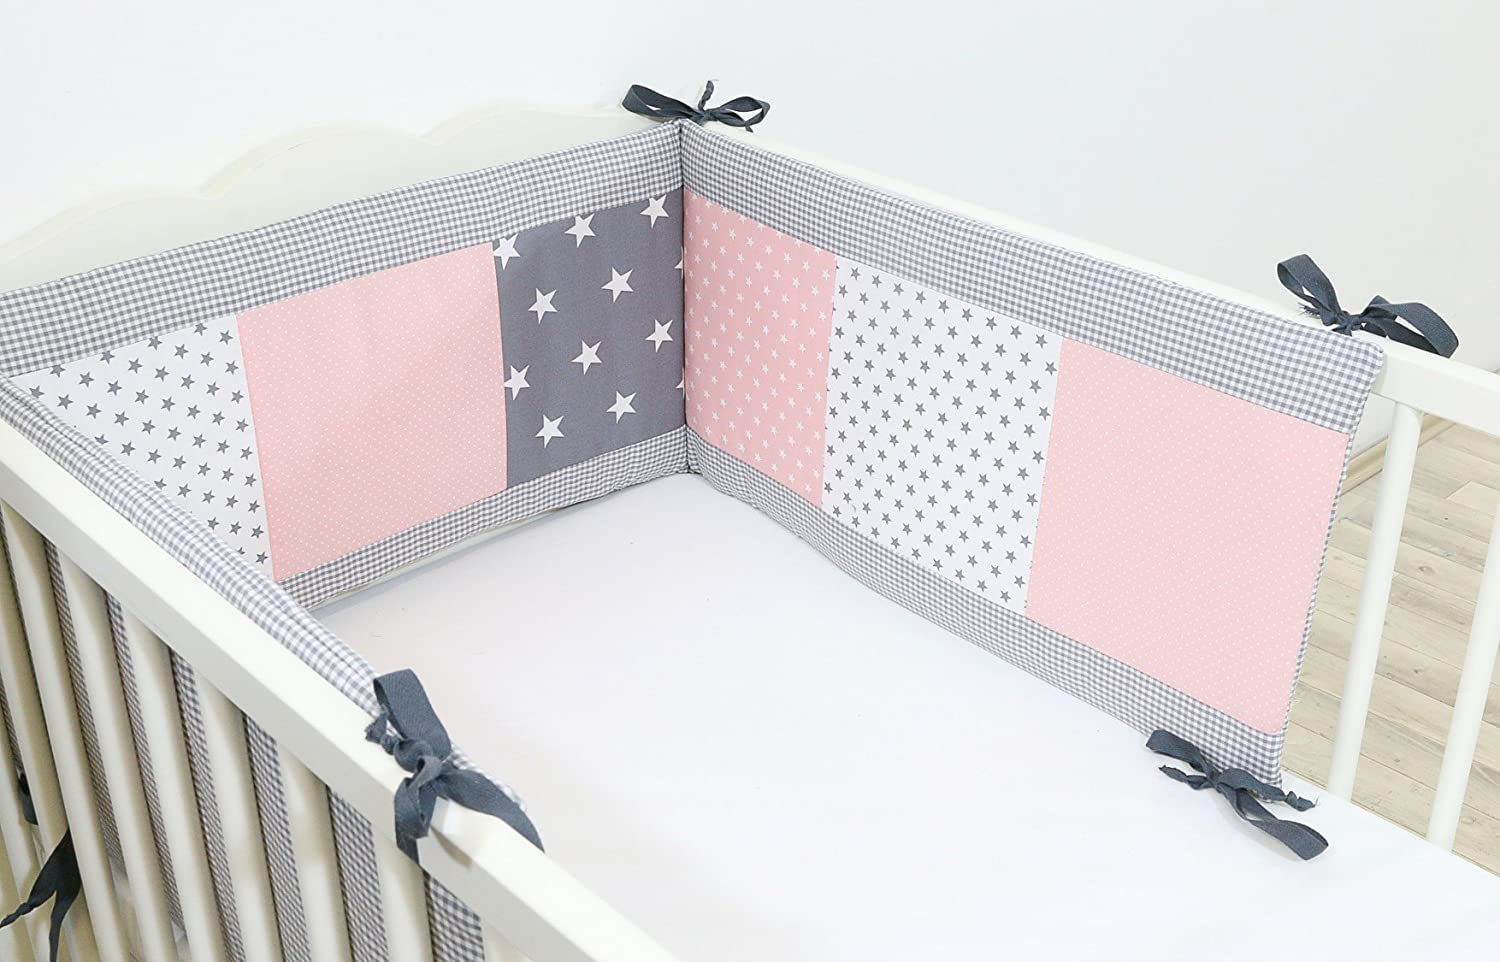 ULLENBOOM ® bumper – pink grey (420 x 30 cm cot bumper for babies, cot bumper pads for the head area of 140 x 70 cm cots; ) N-RG-420